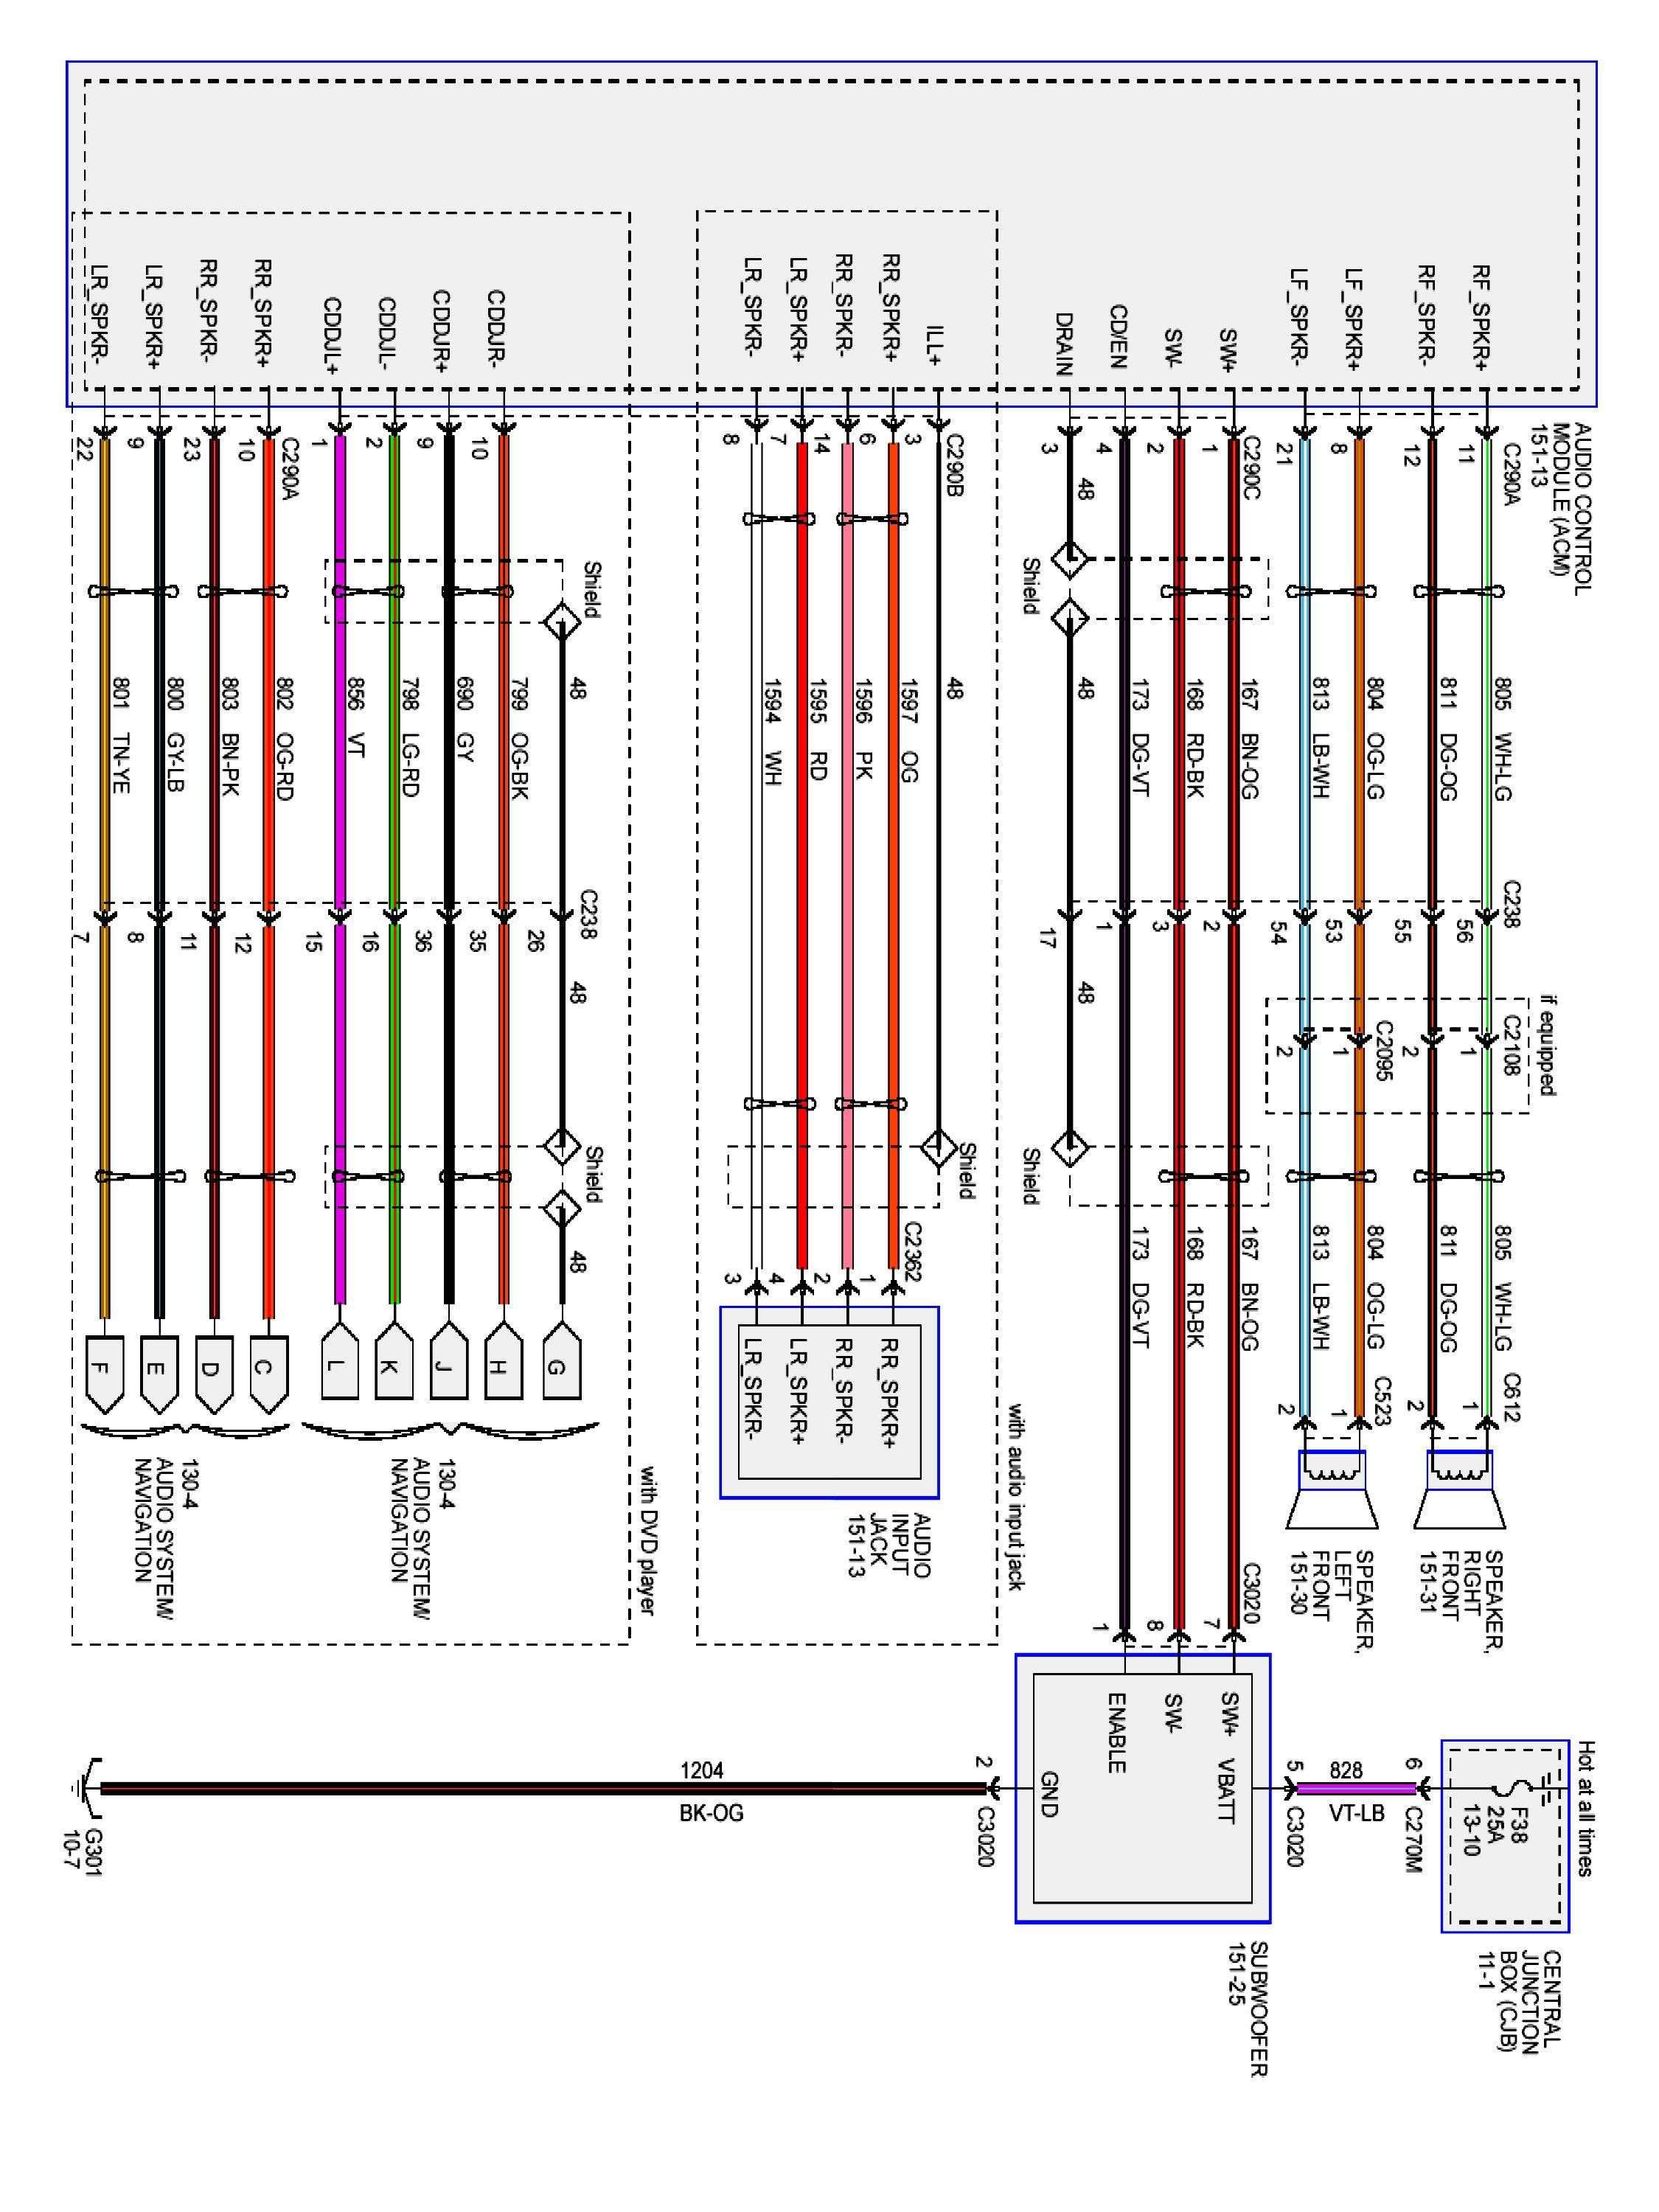 [DIAGRAM_1JK]  Unique 2008 Audi A4 Radio Wiring Diagram #diagram #diagramtemplate  #diagramsample | Kenworth t800, Pioneer stereo, Amplificador | Kenworth T800 Wiring Diagram Radio |  | Pinterest